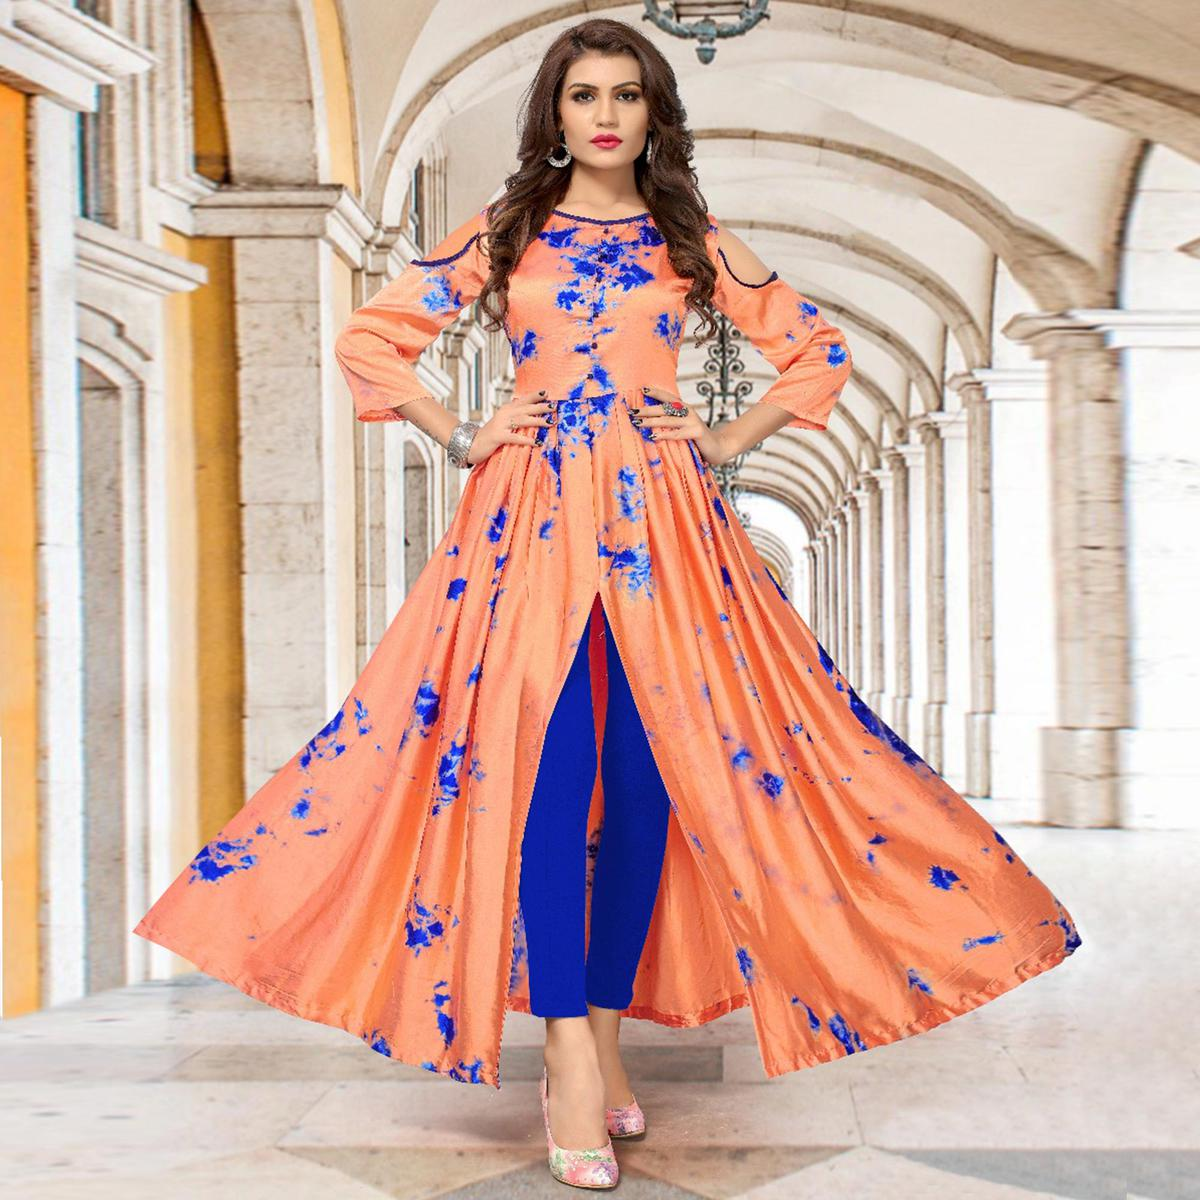 Classy Peach Colored Partywear Shibori Printed Silk Long Kurti